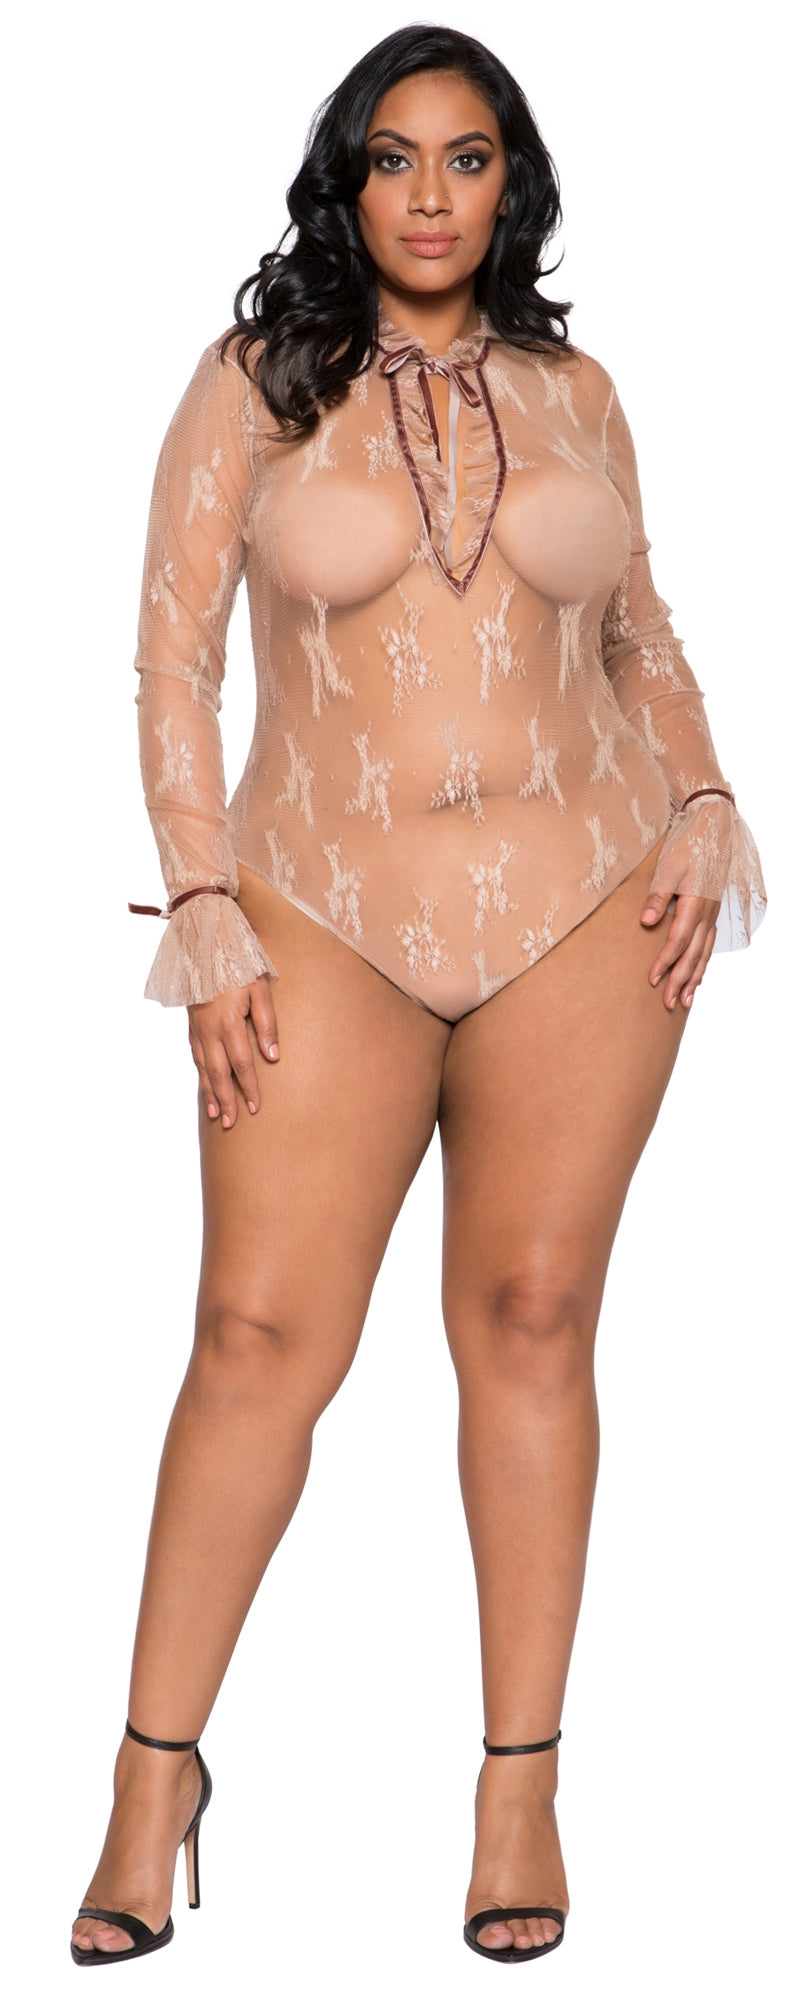 RM-LI249 Long sleeve sheer teddy plus front